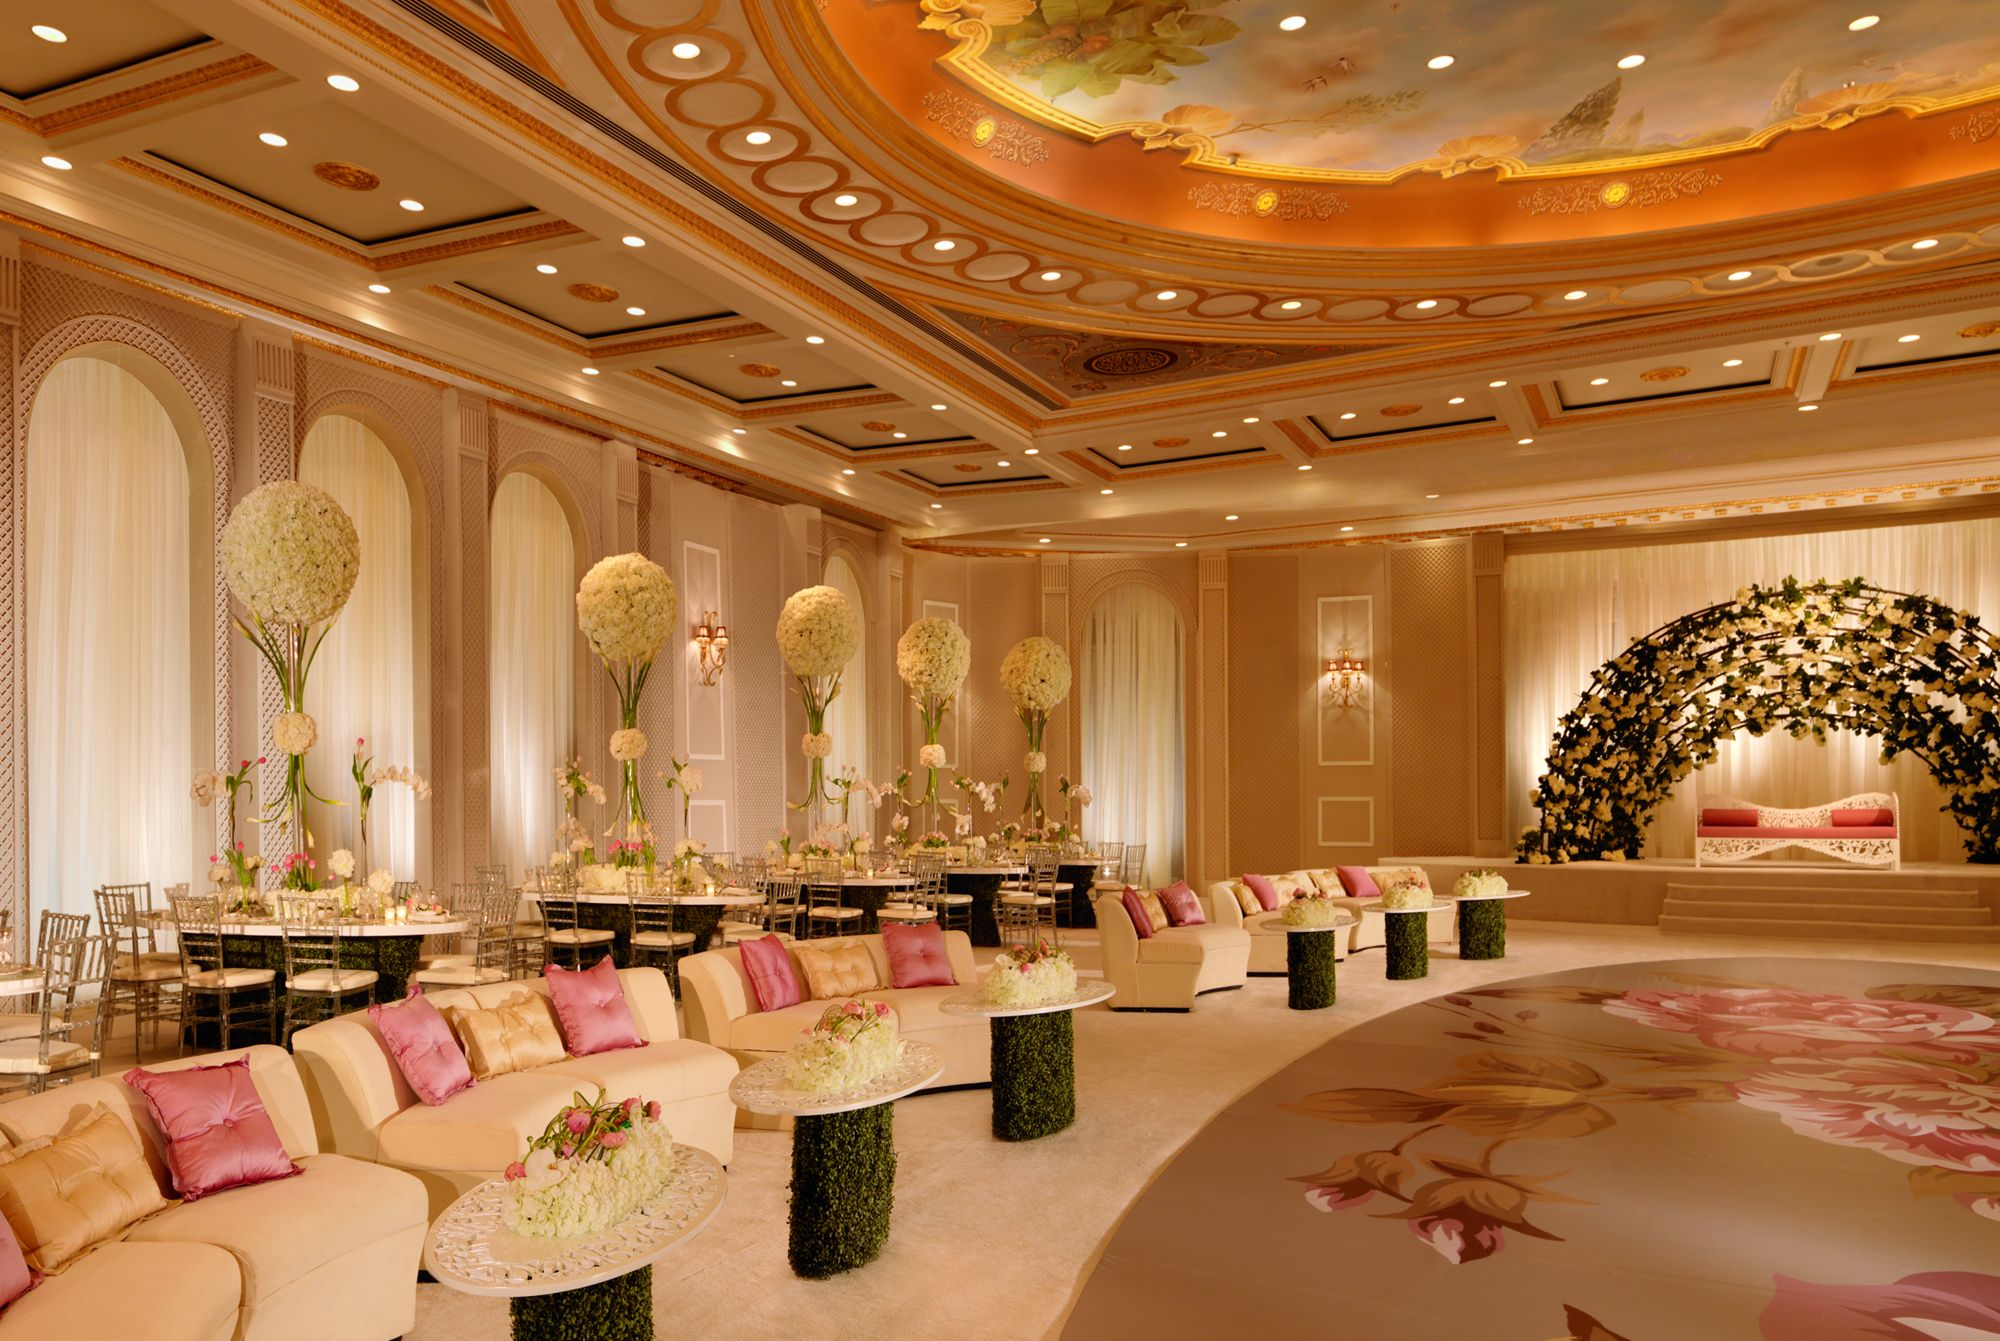 Wedding Packages Bahrain - Bahrain Honeymoon | The Ritz